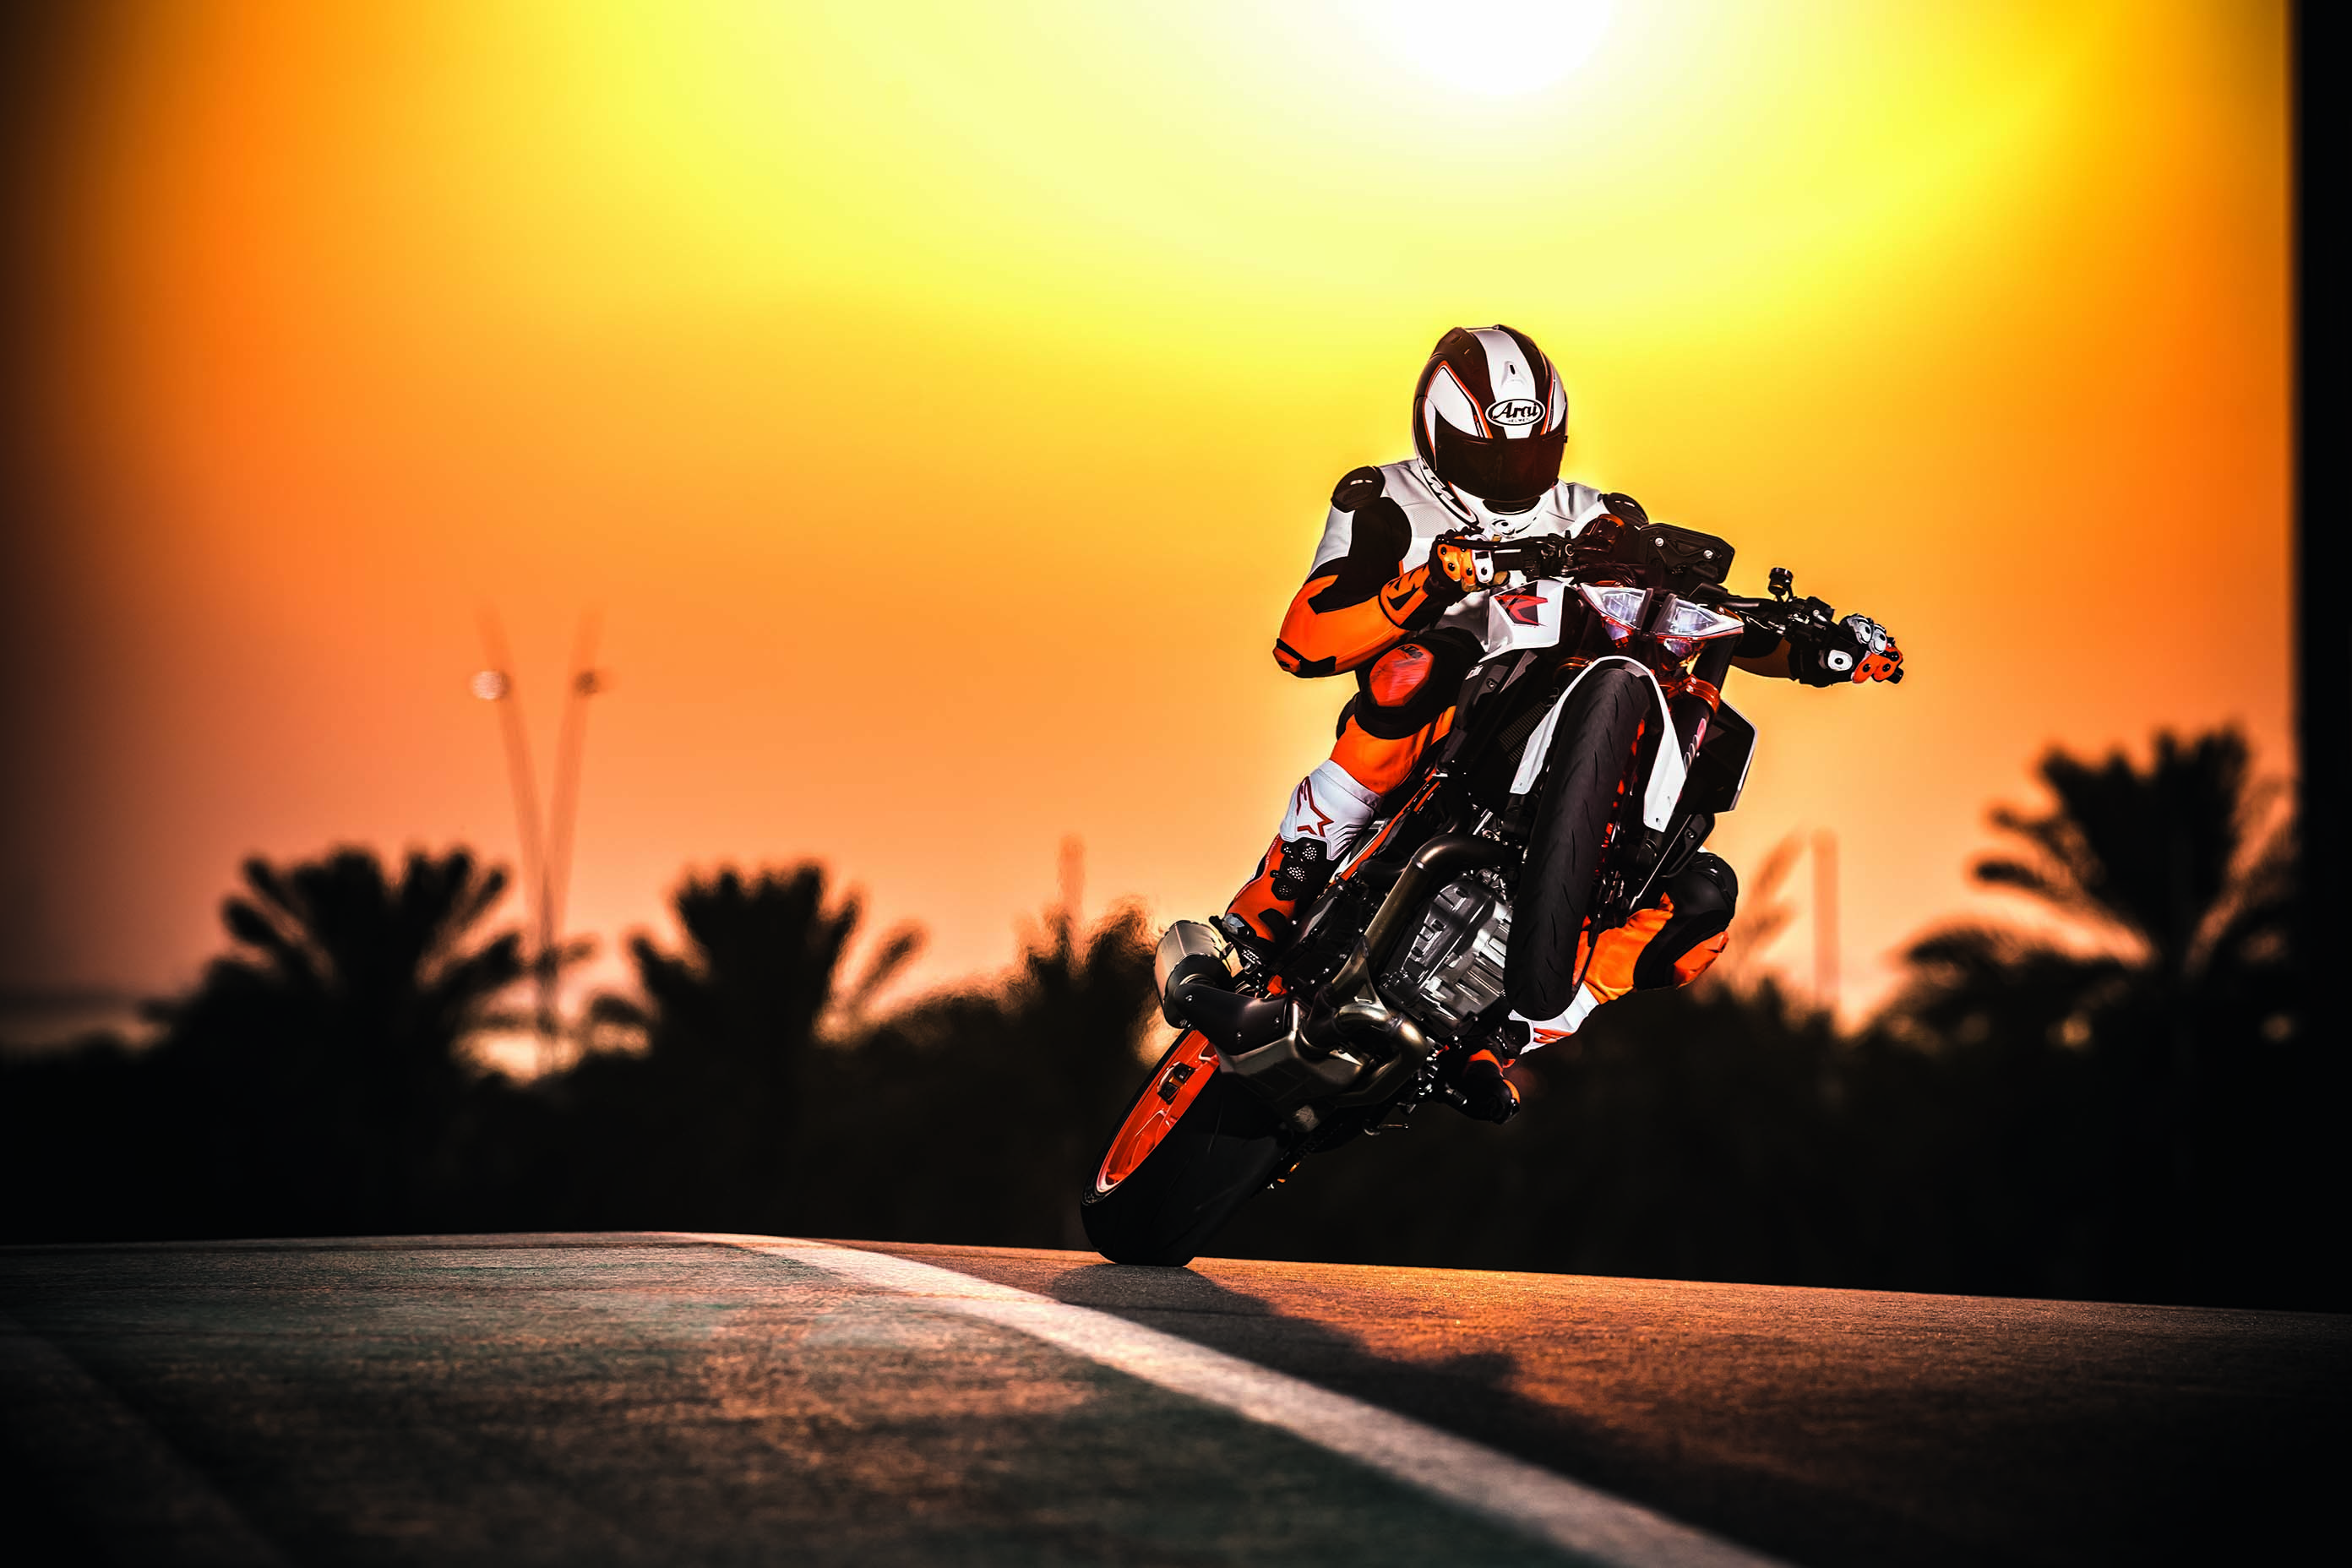 Stunts wallpapers and backgrounds 2784x1856